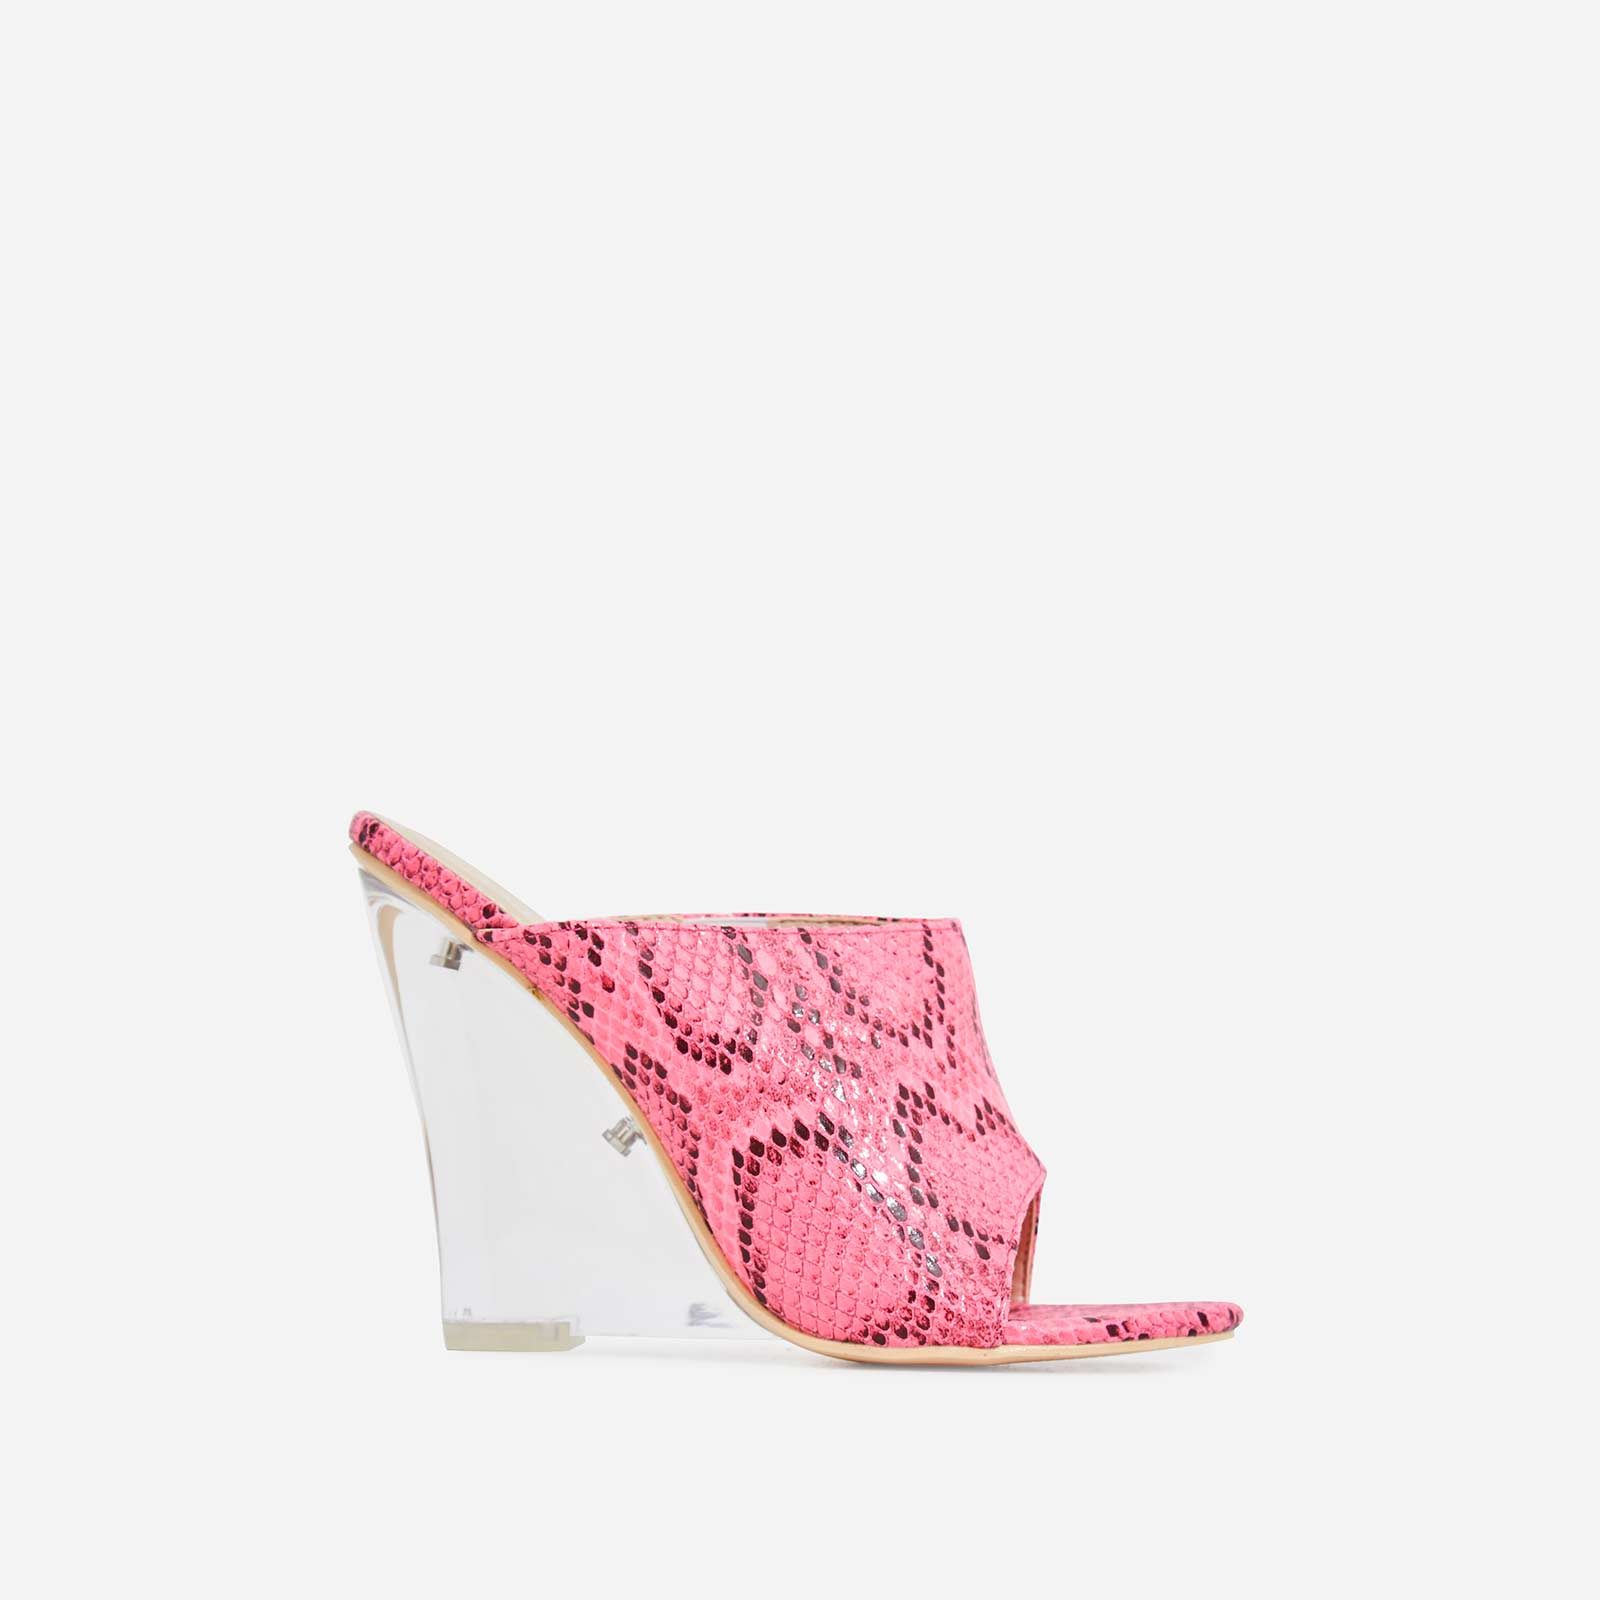 Candy Perspex Wedge Mule In Fuchsia Snake Print Faux Leather